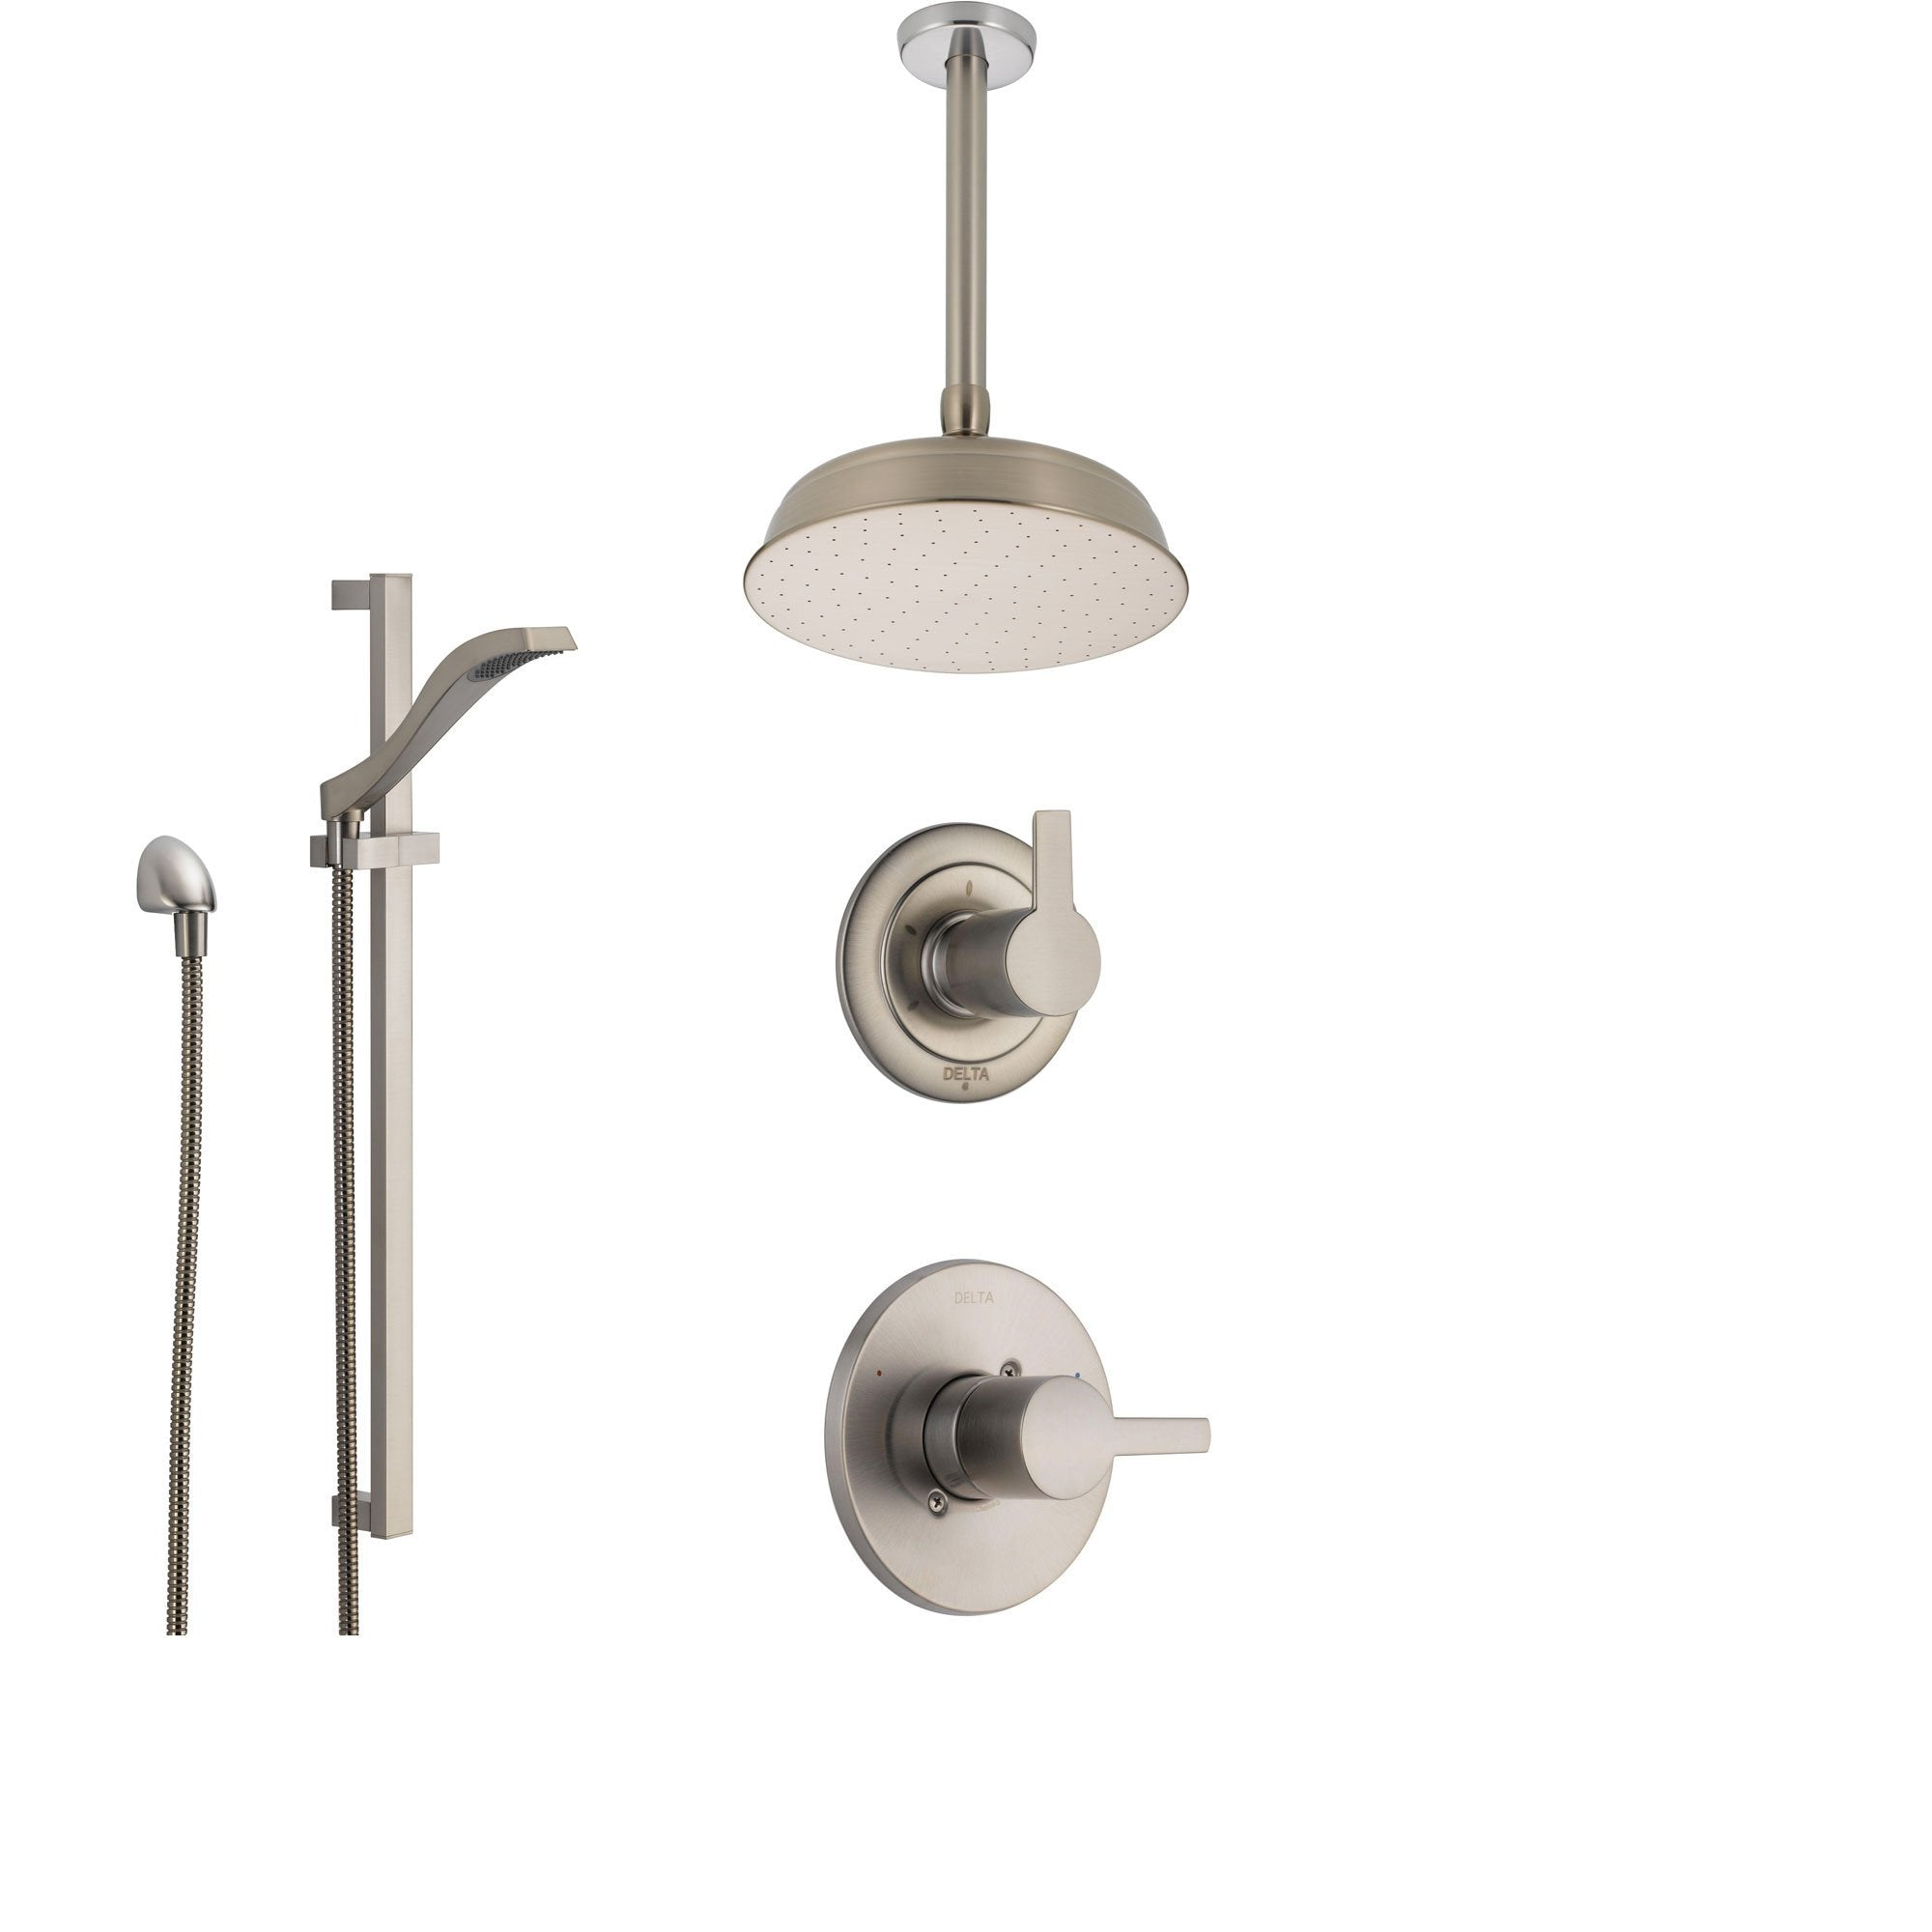 Delta Compel Stainless Steel Shower System with Normal Shower Handle, 3-setting Diverter, Large Round Ceiling Mount Showerhead, and Handheld Shower Spray SS146181SS